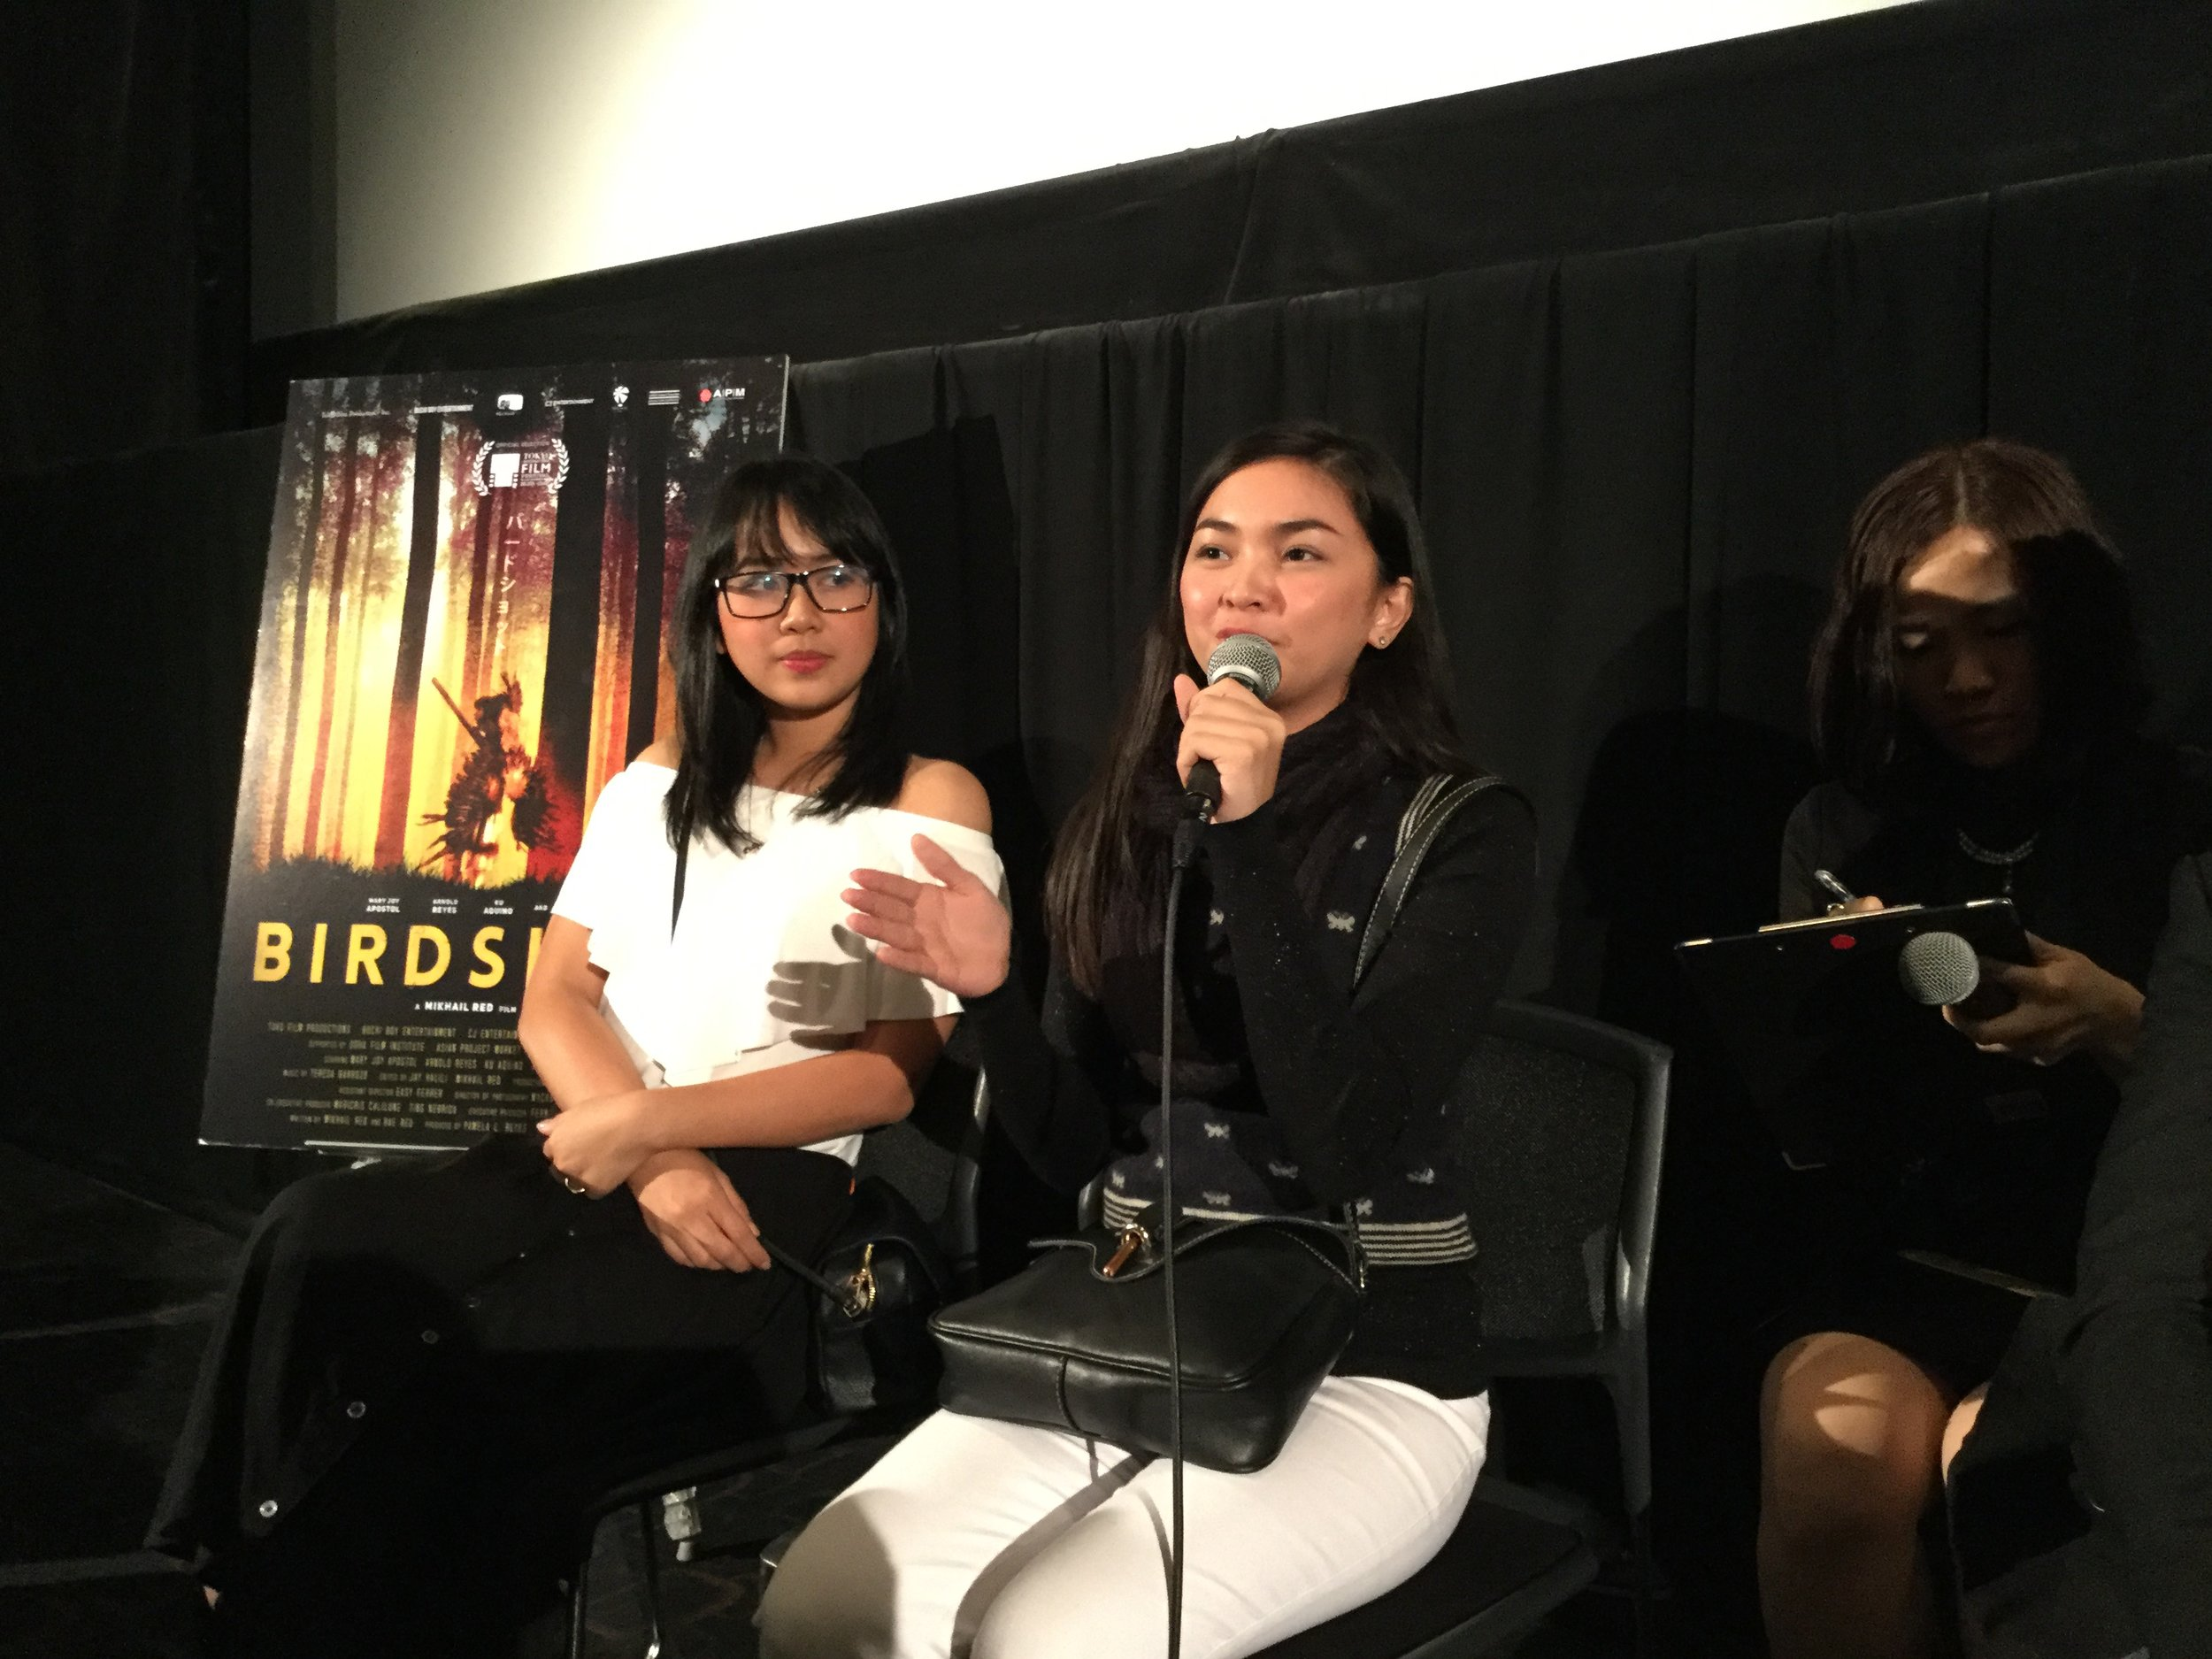 Birdshot  producer Pamela Reyes and actress Mary Joy Apostol